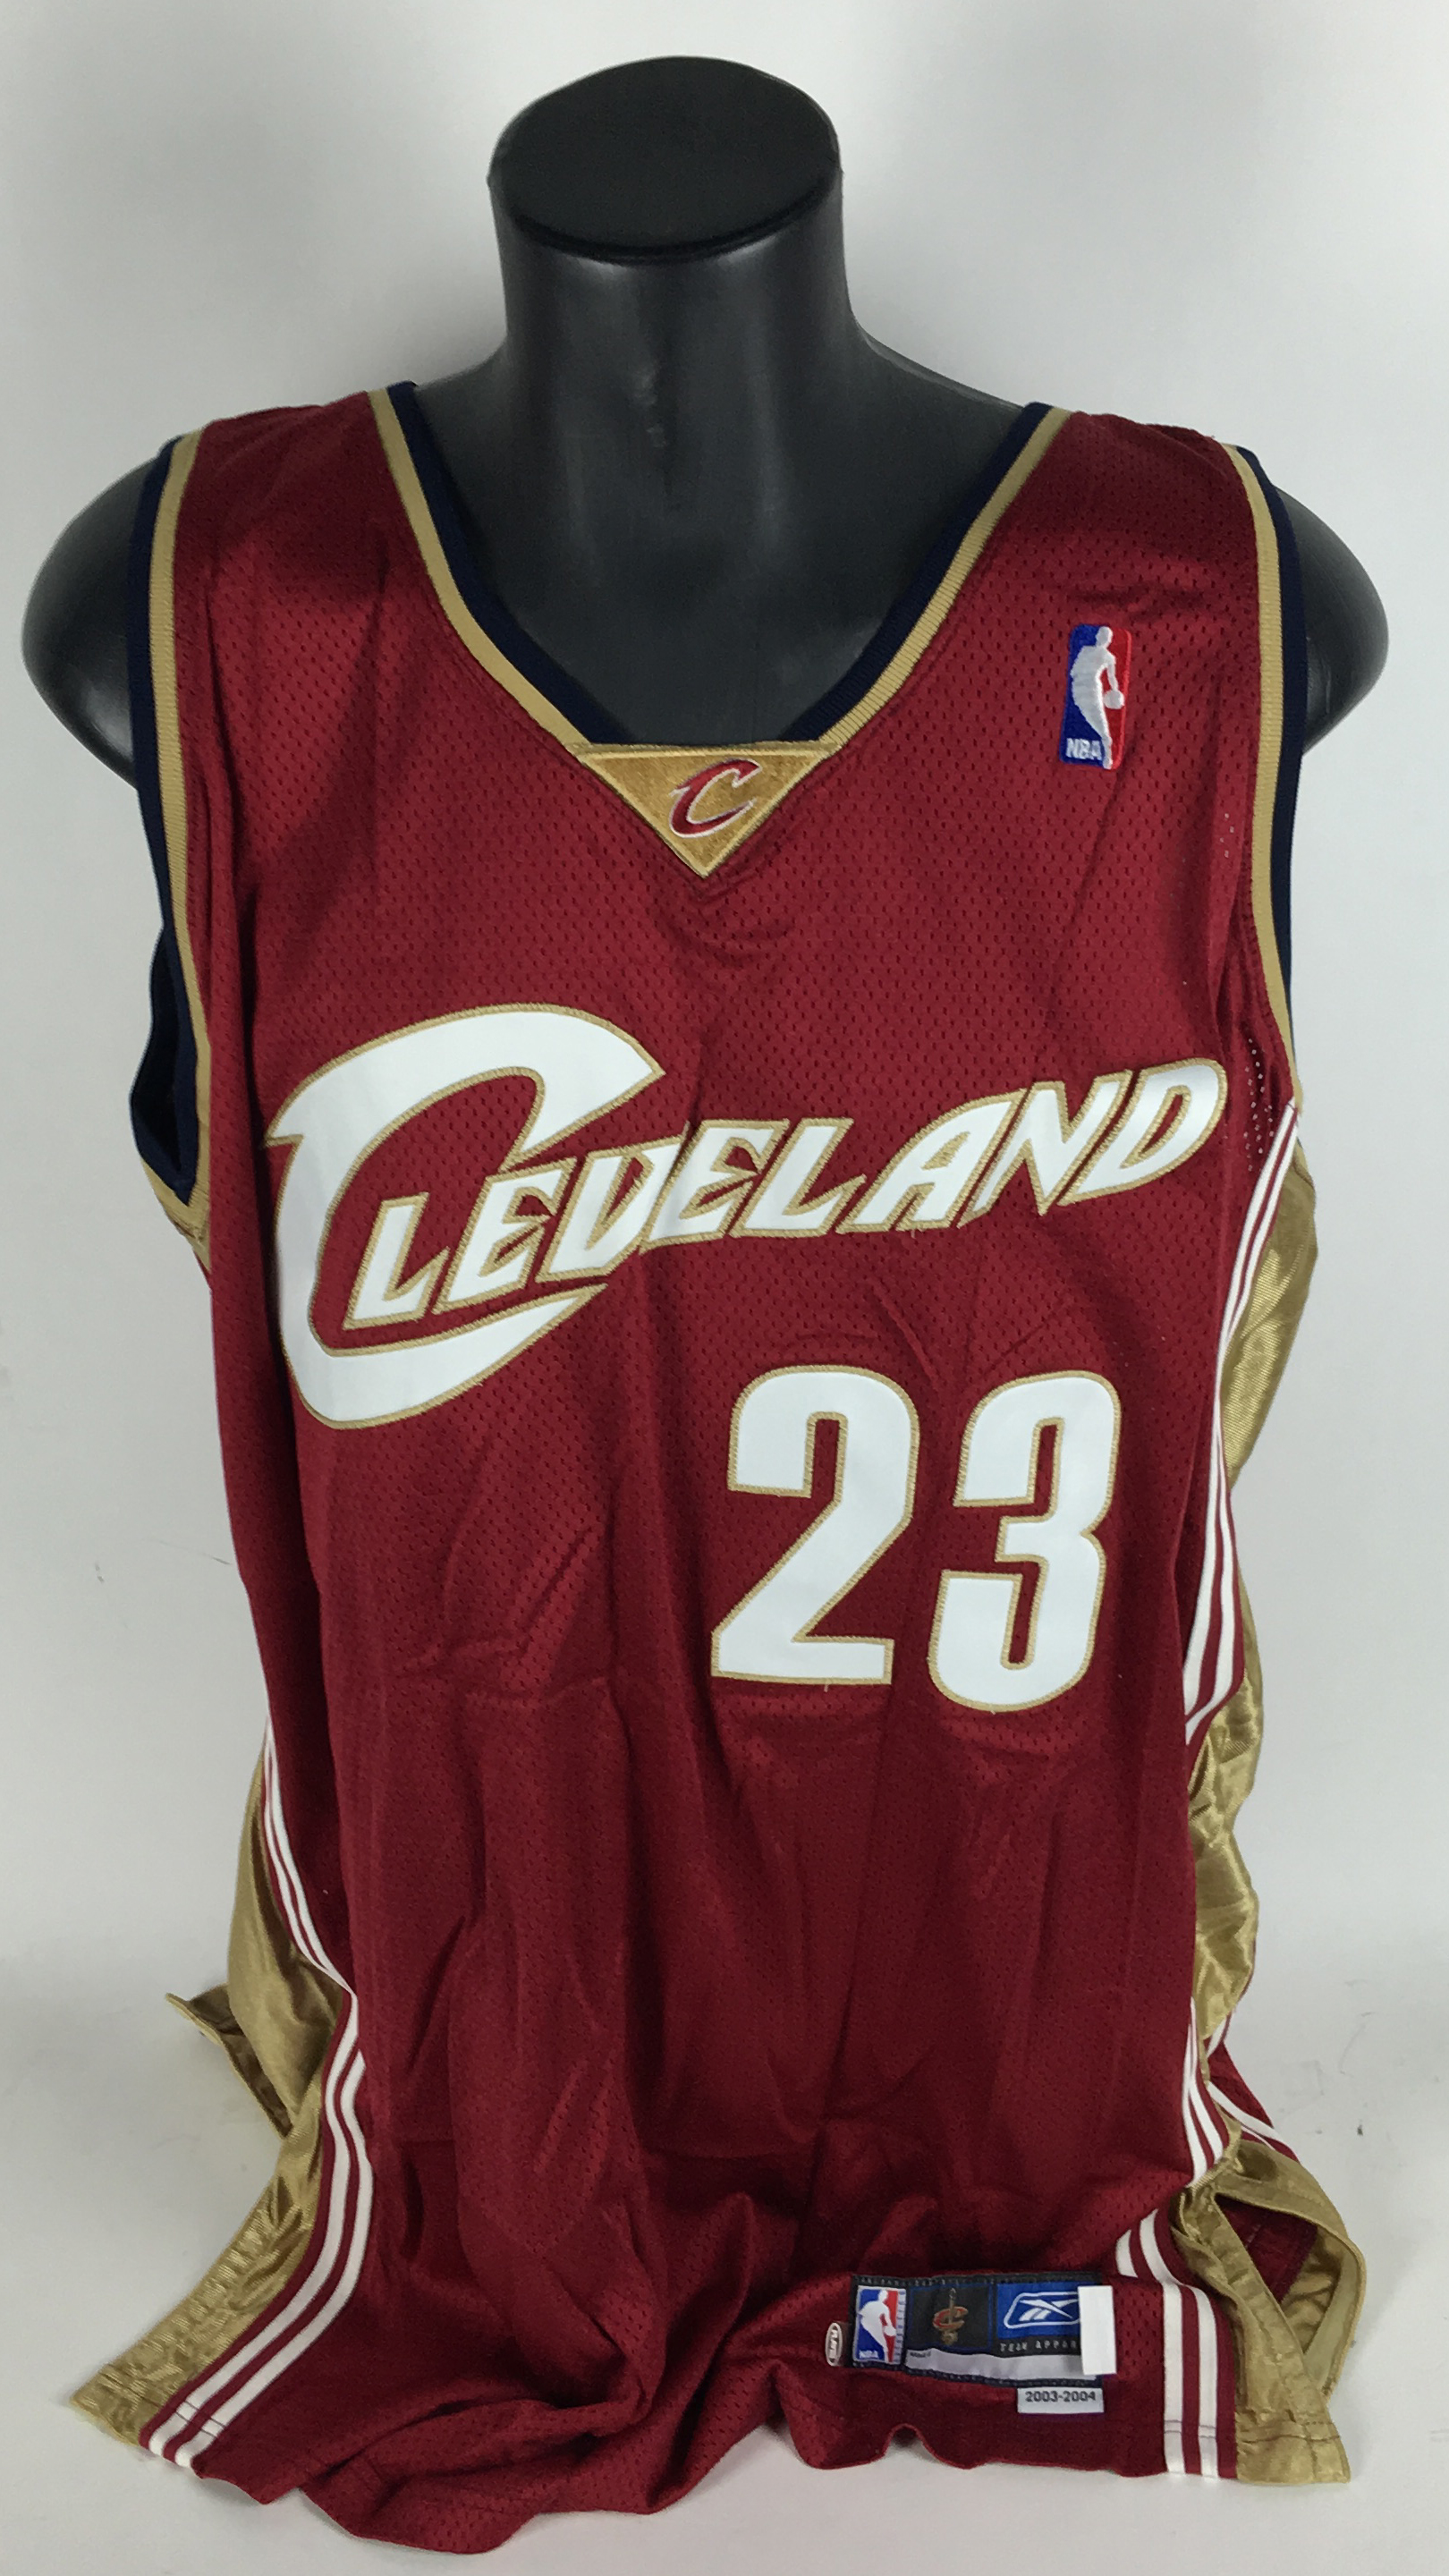 bc87fe629ea4 ... LeBron James Game Used Worn Rookie 2003 04 Cleveland Cavaliers Jersey  (LAMPSON GU ...